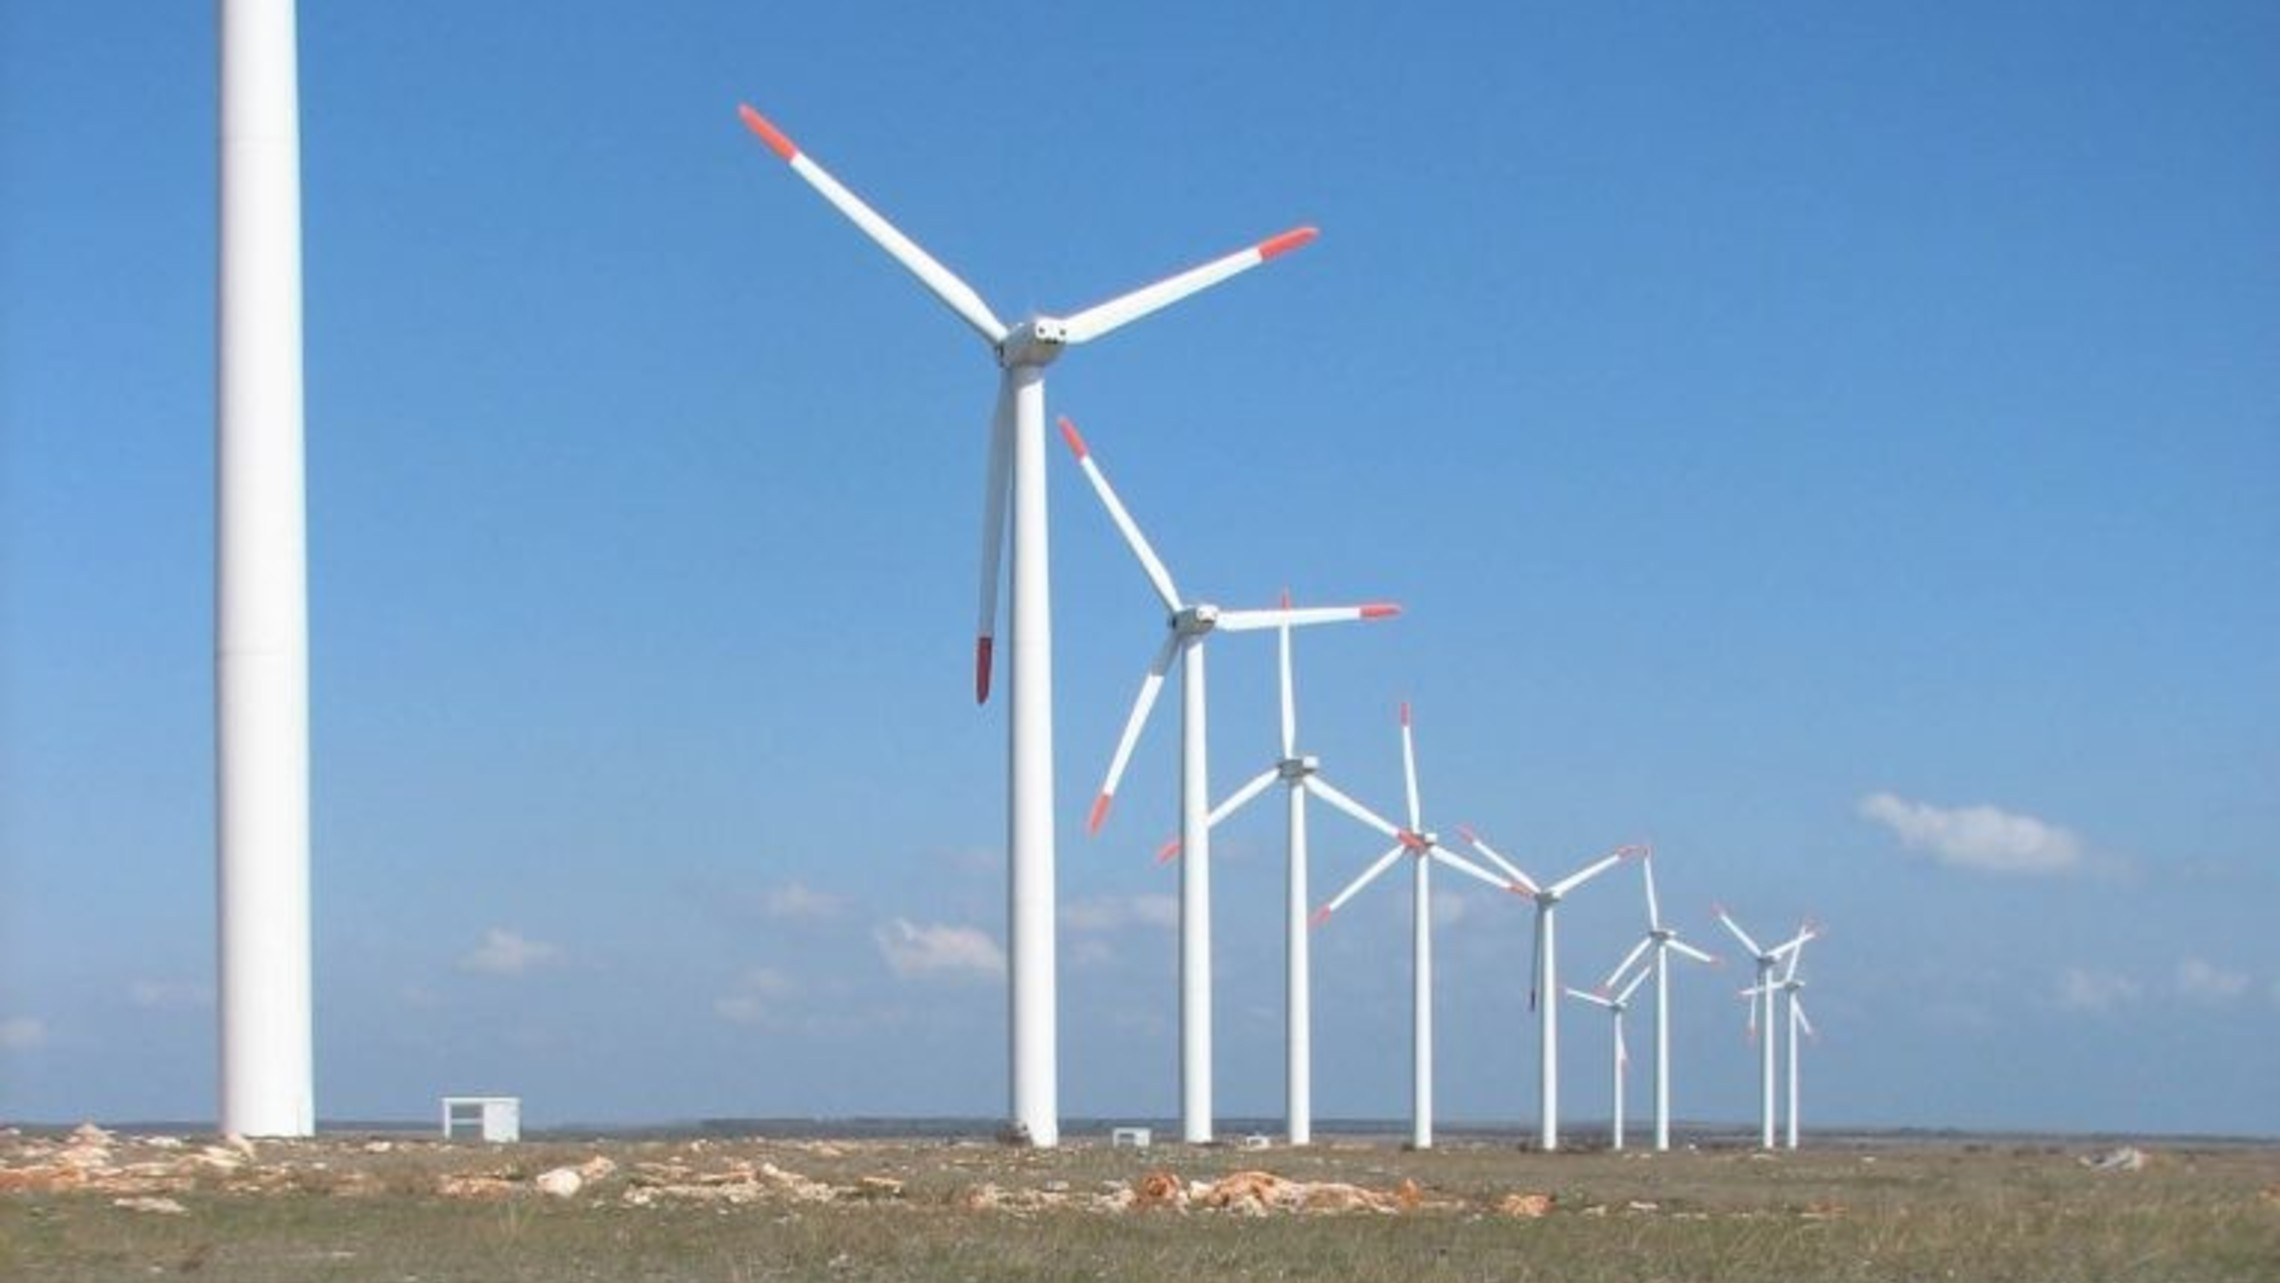 Bird Wind Turbine Collision Bspb Birdlife Bulgaria 768x1024